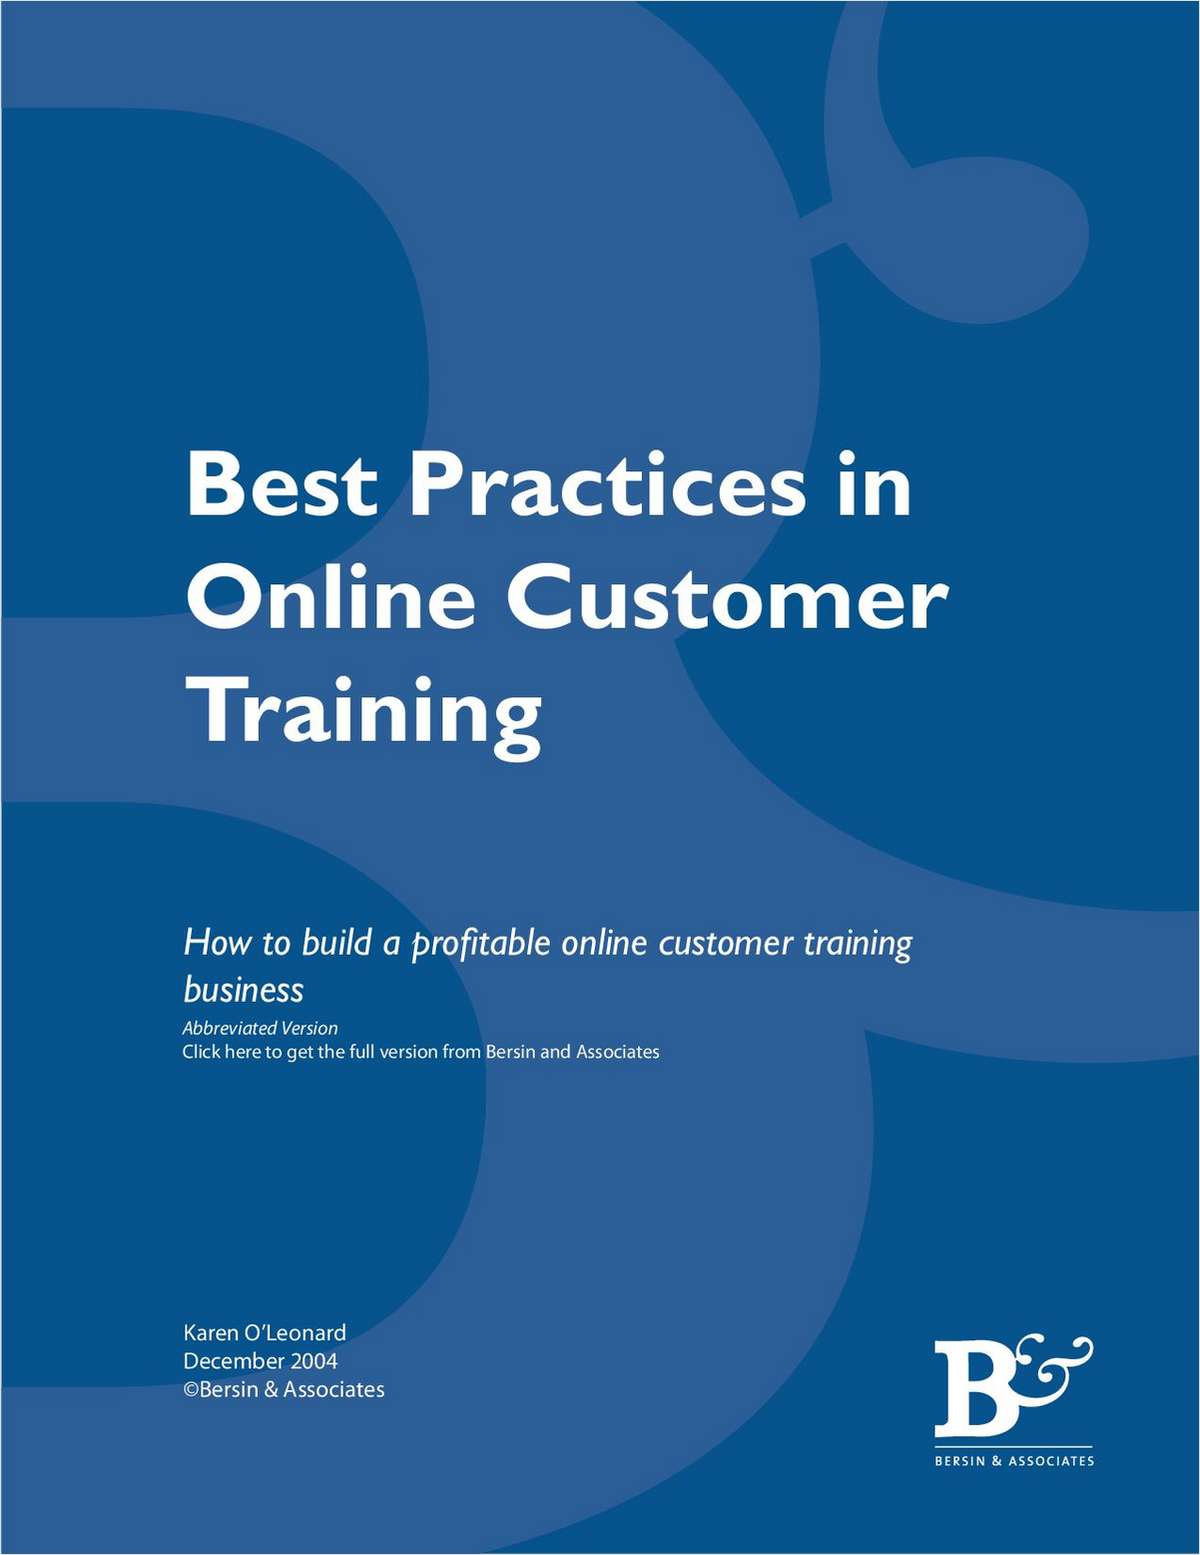 Best Practices in Online Customer Training